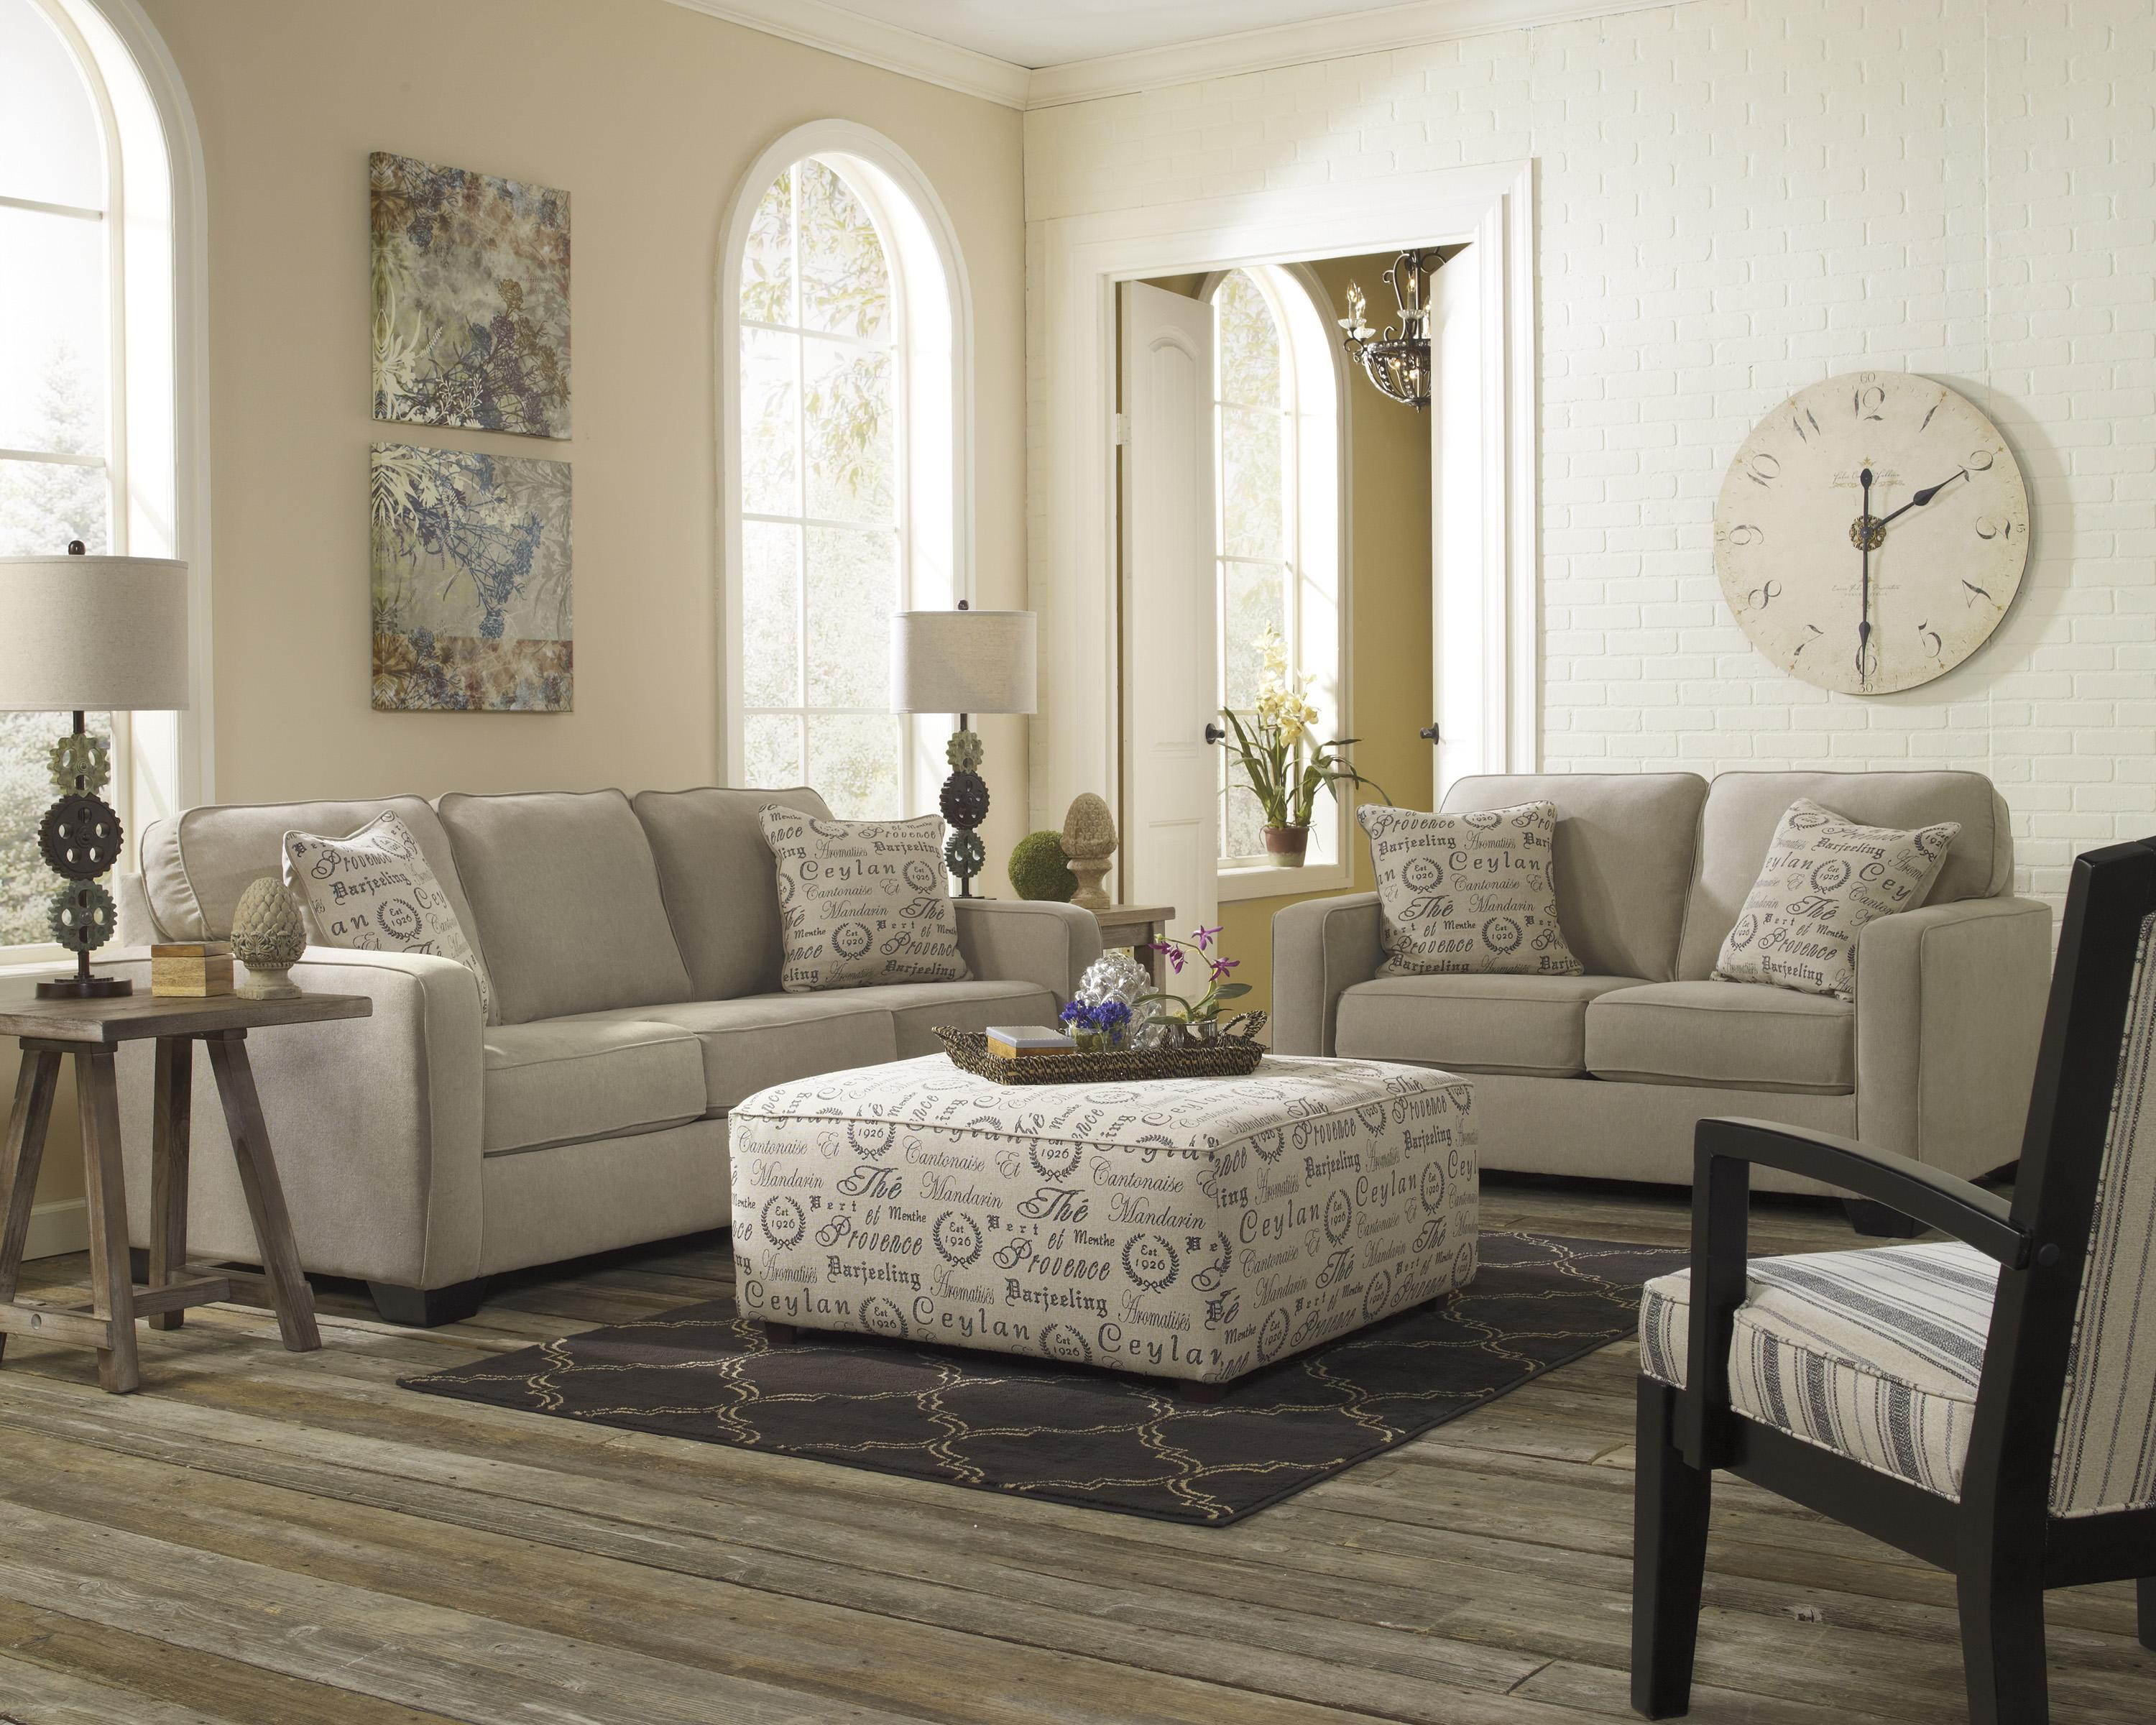 Signature Design by Ashley Furniture Alenya - Quartz Stationary Living Room Group - Item Number: 16600 Living Room Group 4